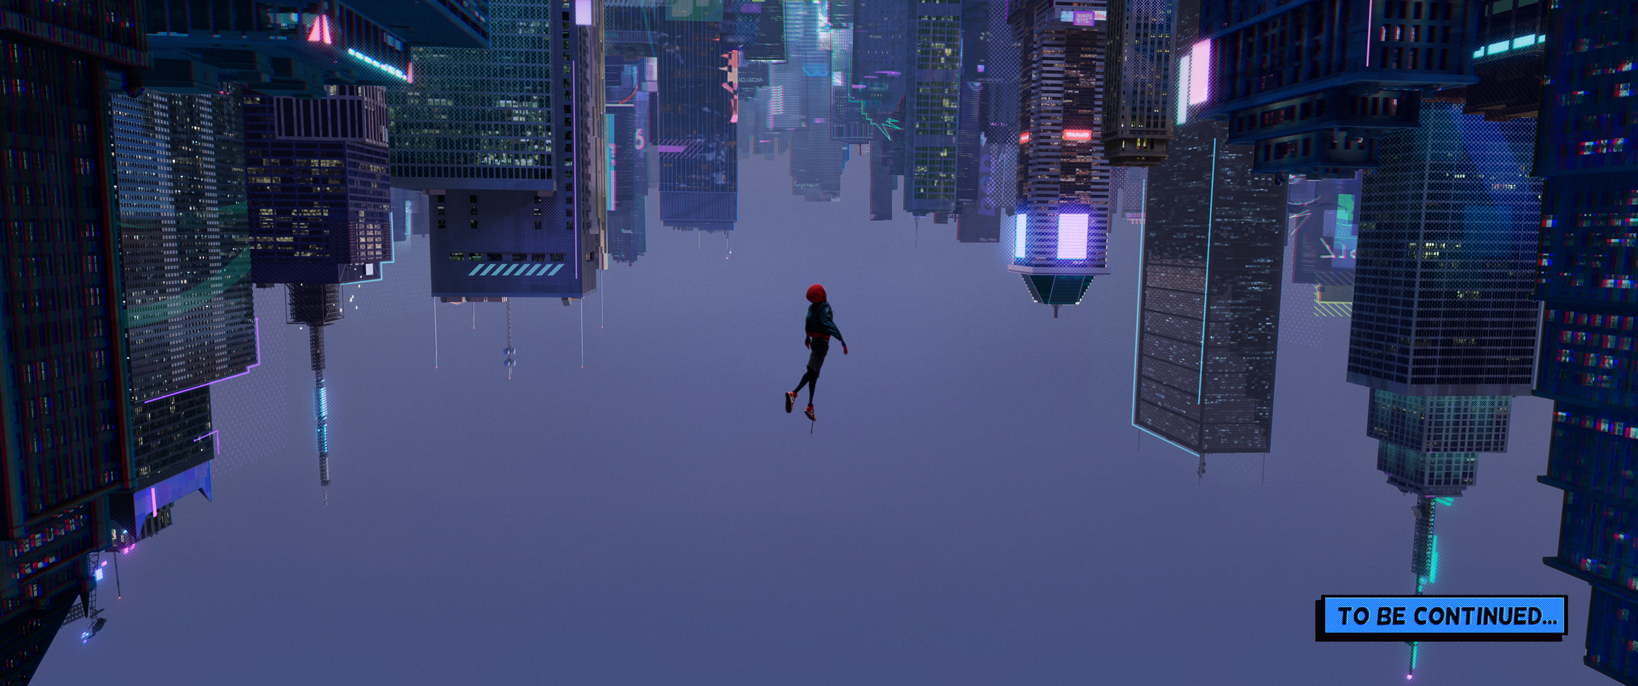 The First Teaser Trailer Featuring Afro-Latino Spider-Man Miles Morales Is Finally Here